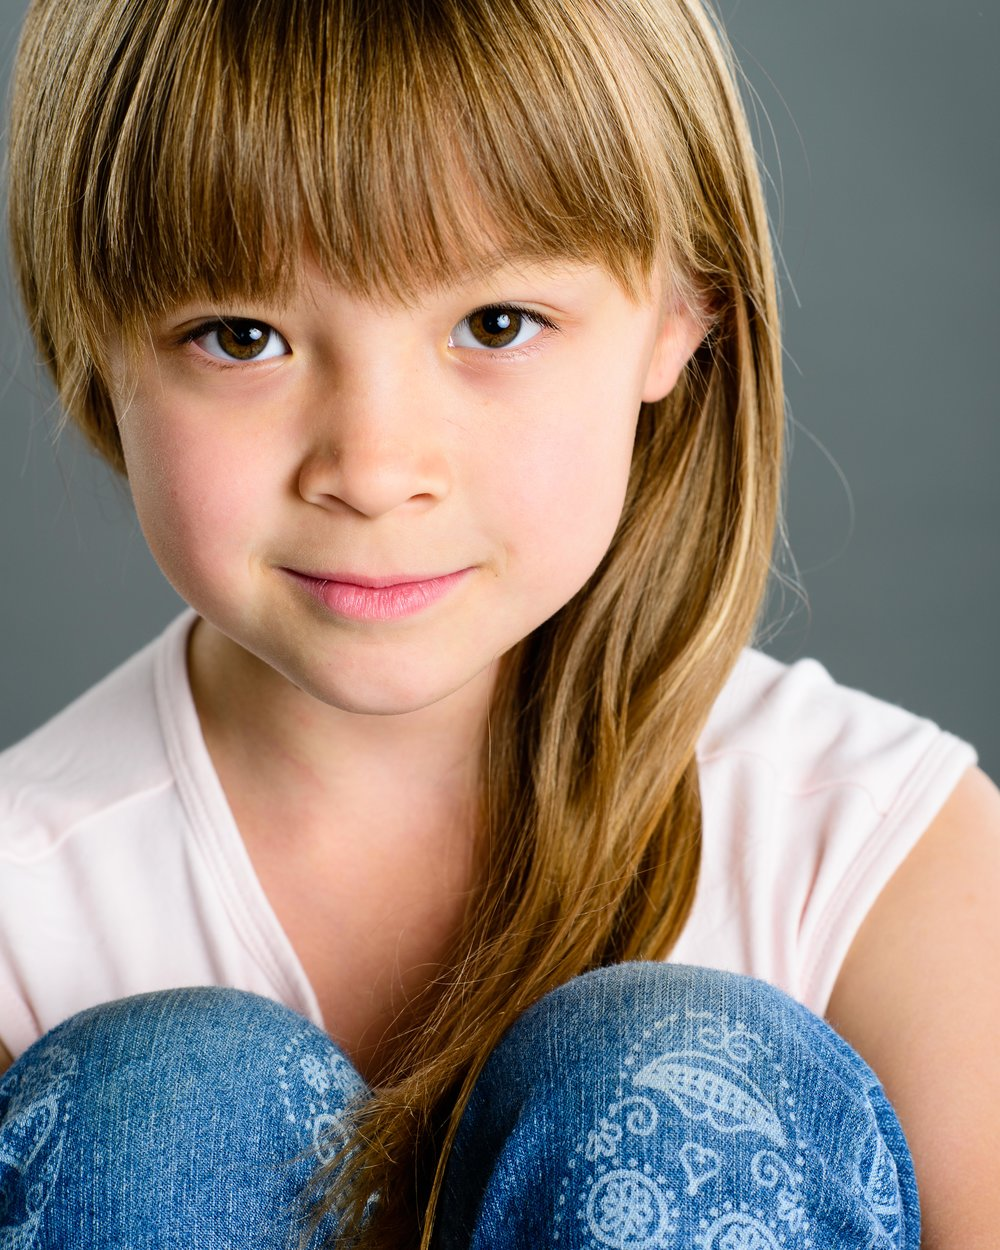 ChildrenHeadshots006.jpg